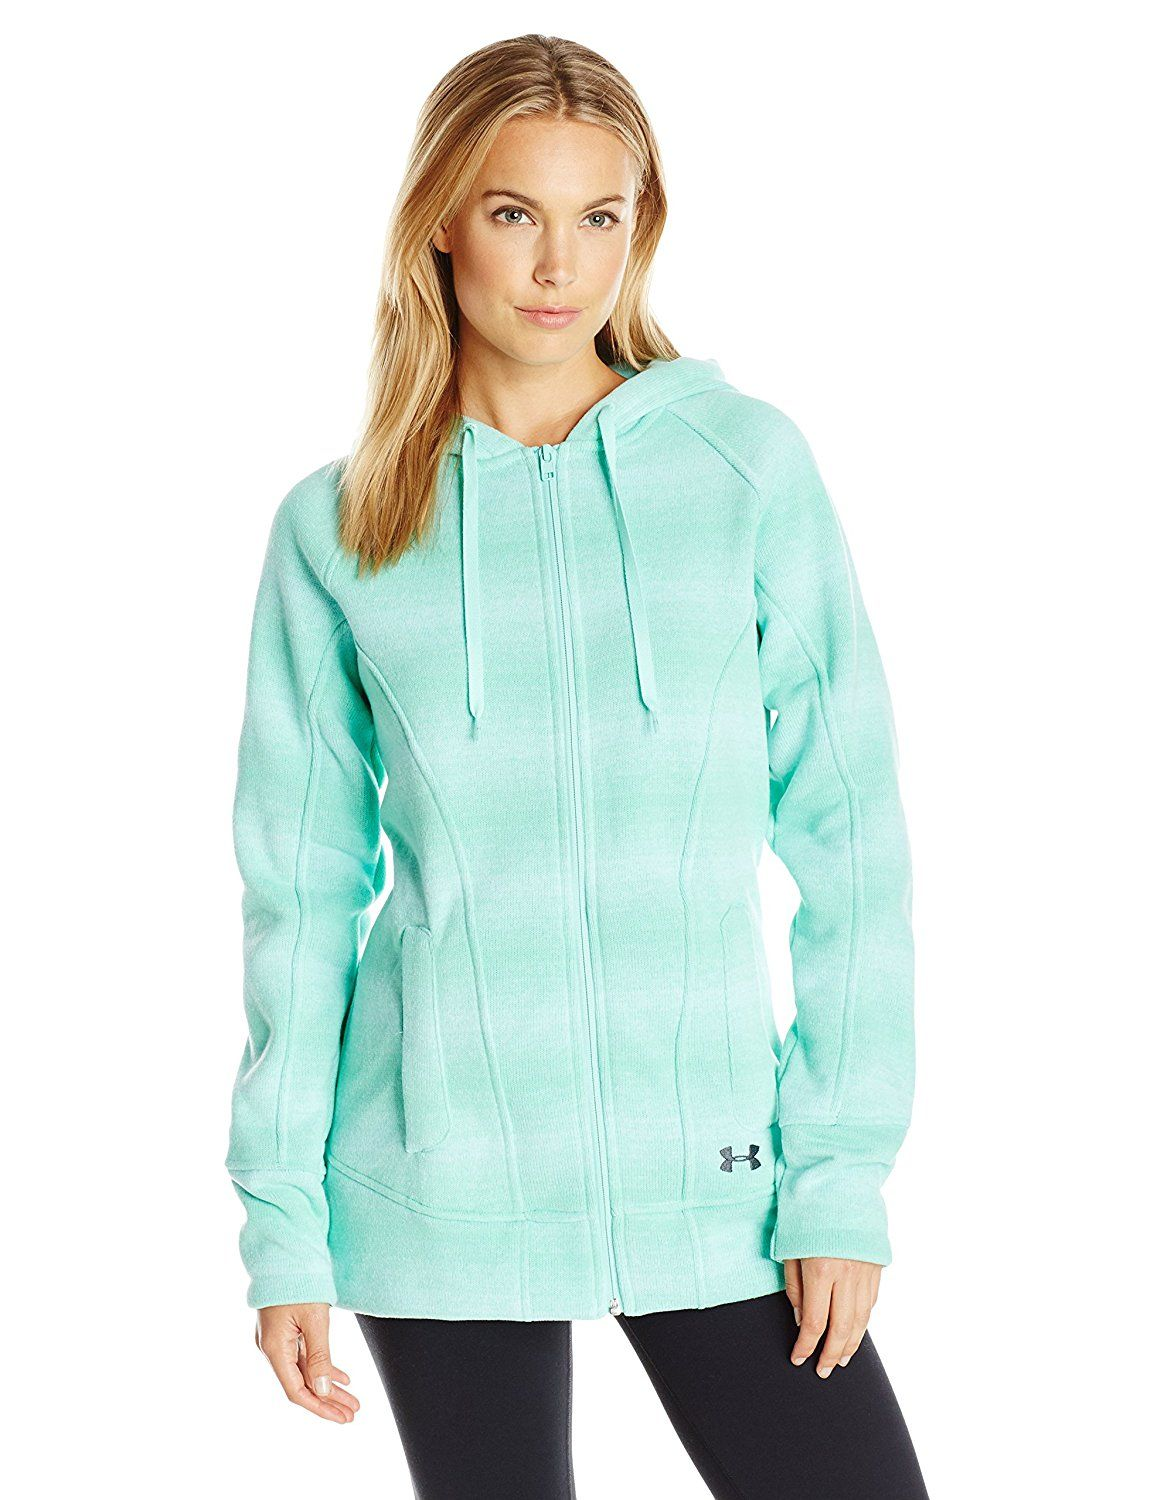 Under Armour Women's Wintersweet Full Zip Hoodie * This is an Amazon Affiliate link. Want to know more, click on the image.